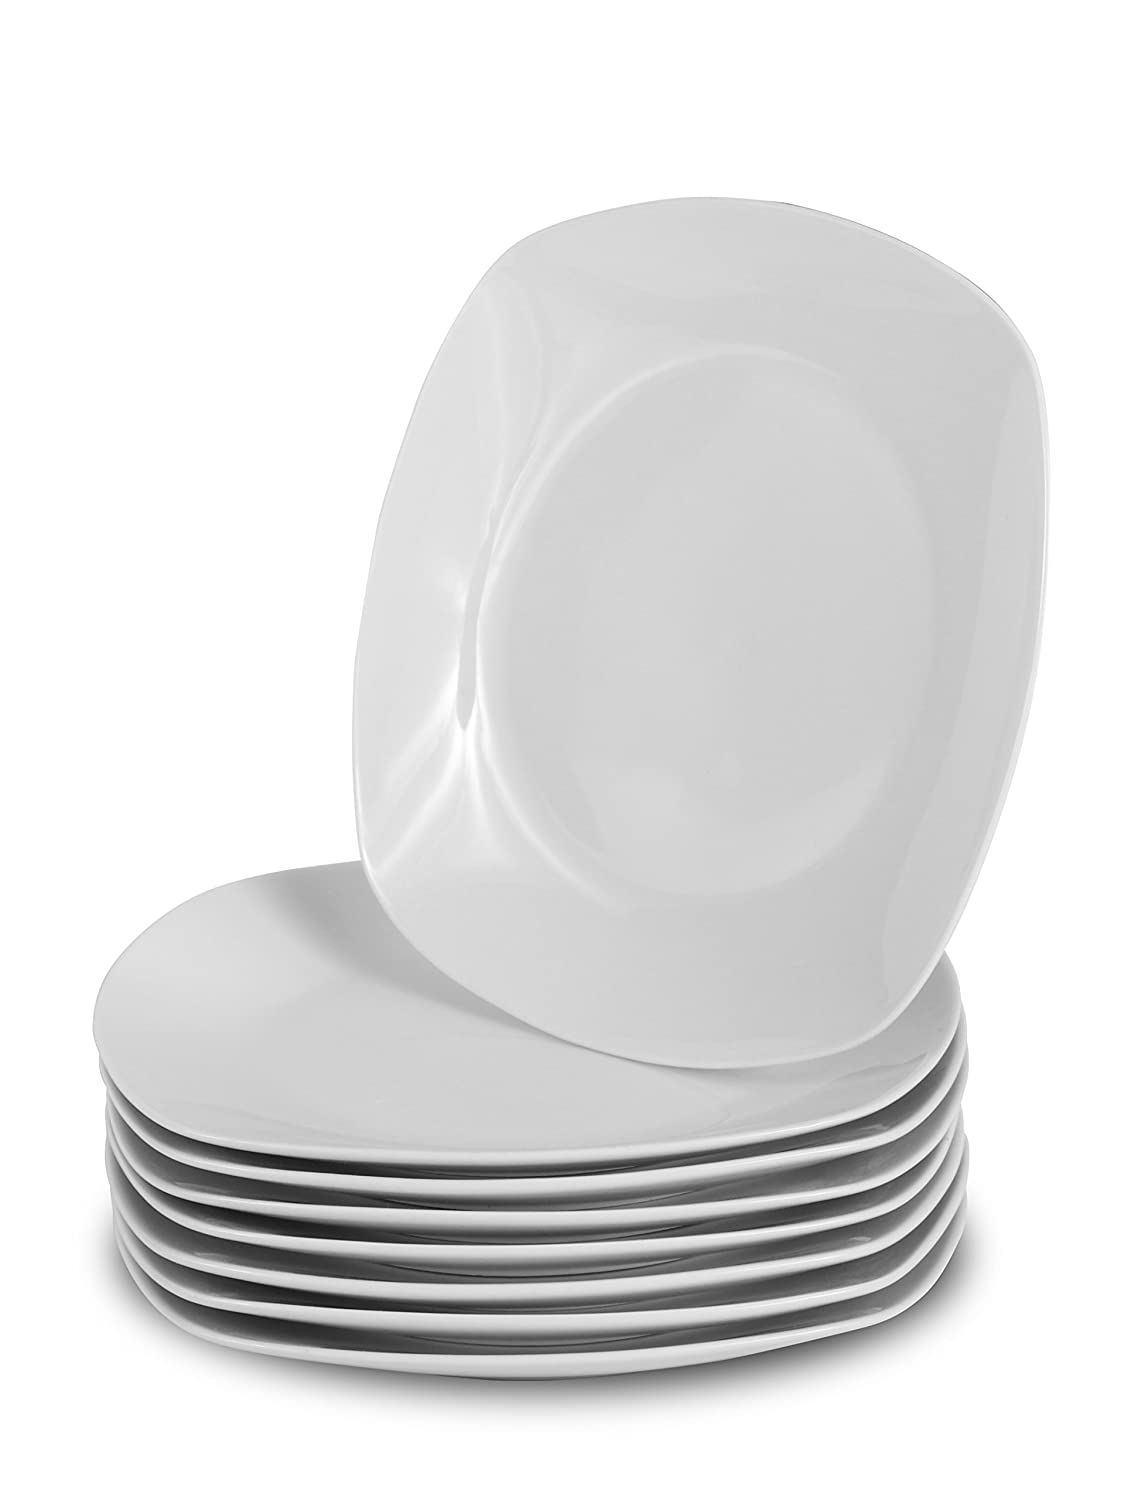 Klikel 8 Piece White Square Dinnerware Set - 4 Dinner Plates (10-inch) And 4 Salad Plates (8.3-inch) - Classic Solid Coupe Style Porcelain Dinnerware Klikel Inc